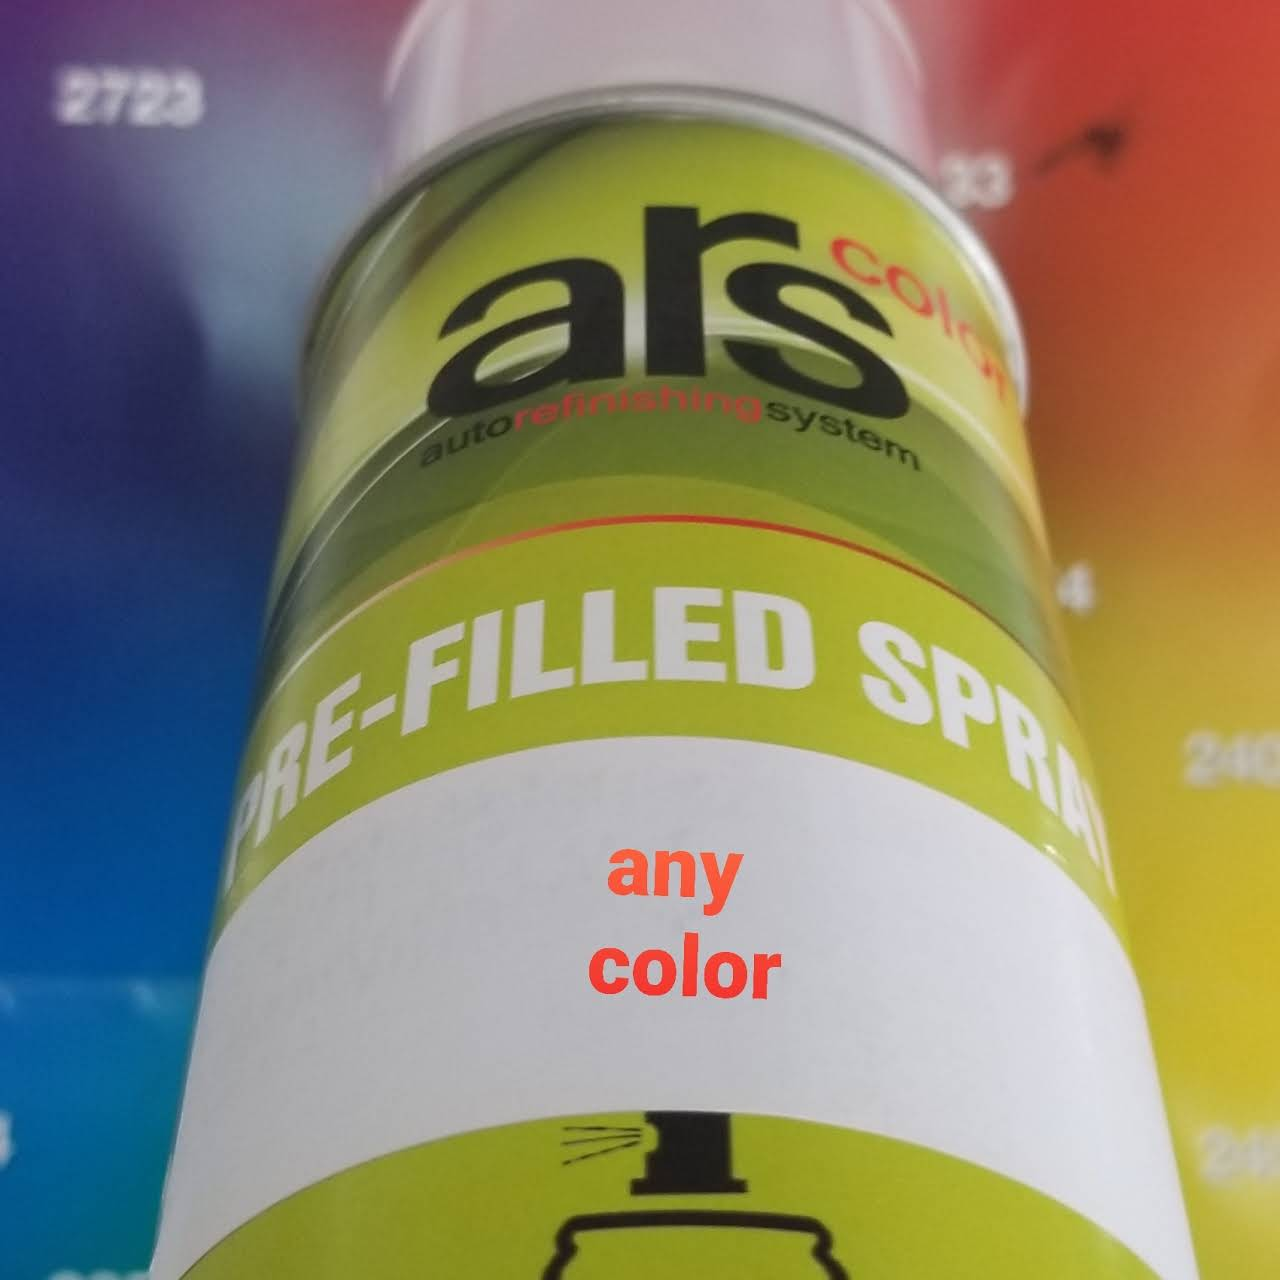 Vsb Auto Paint Supply Paint Store In Nampa